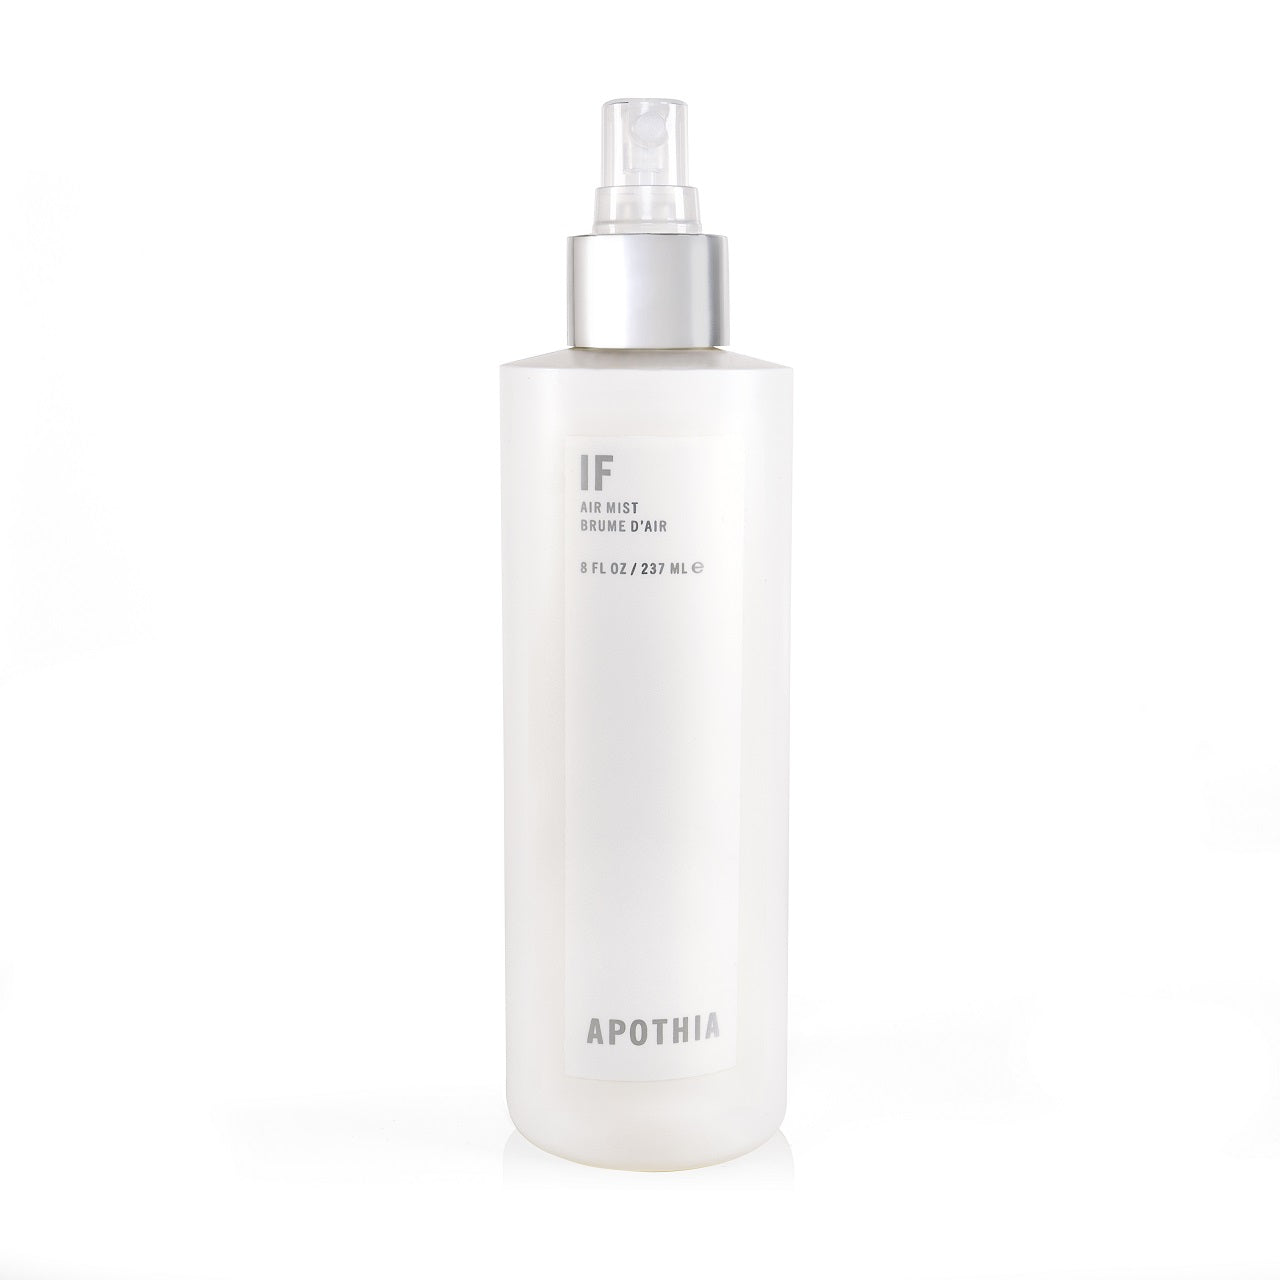 APOTHIA Air Mist - IF